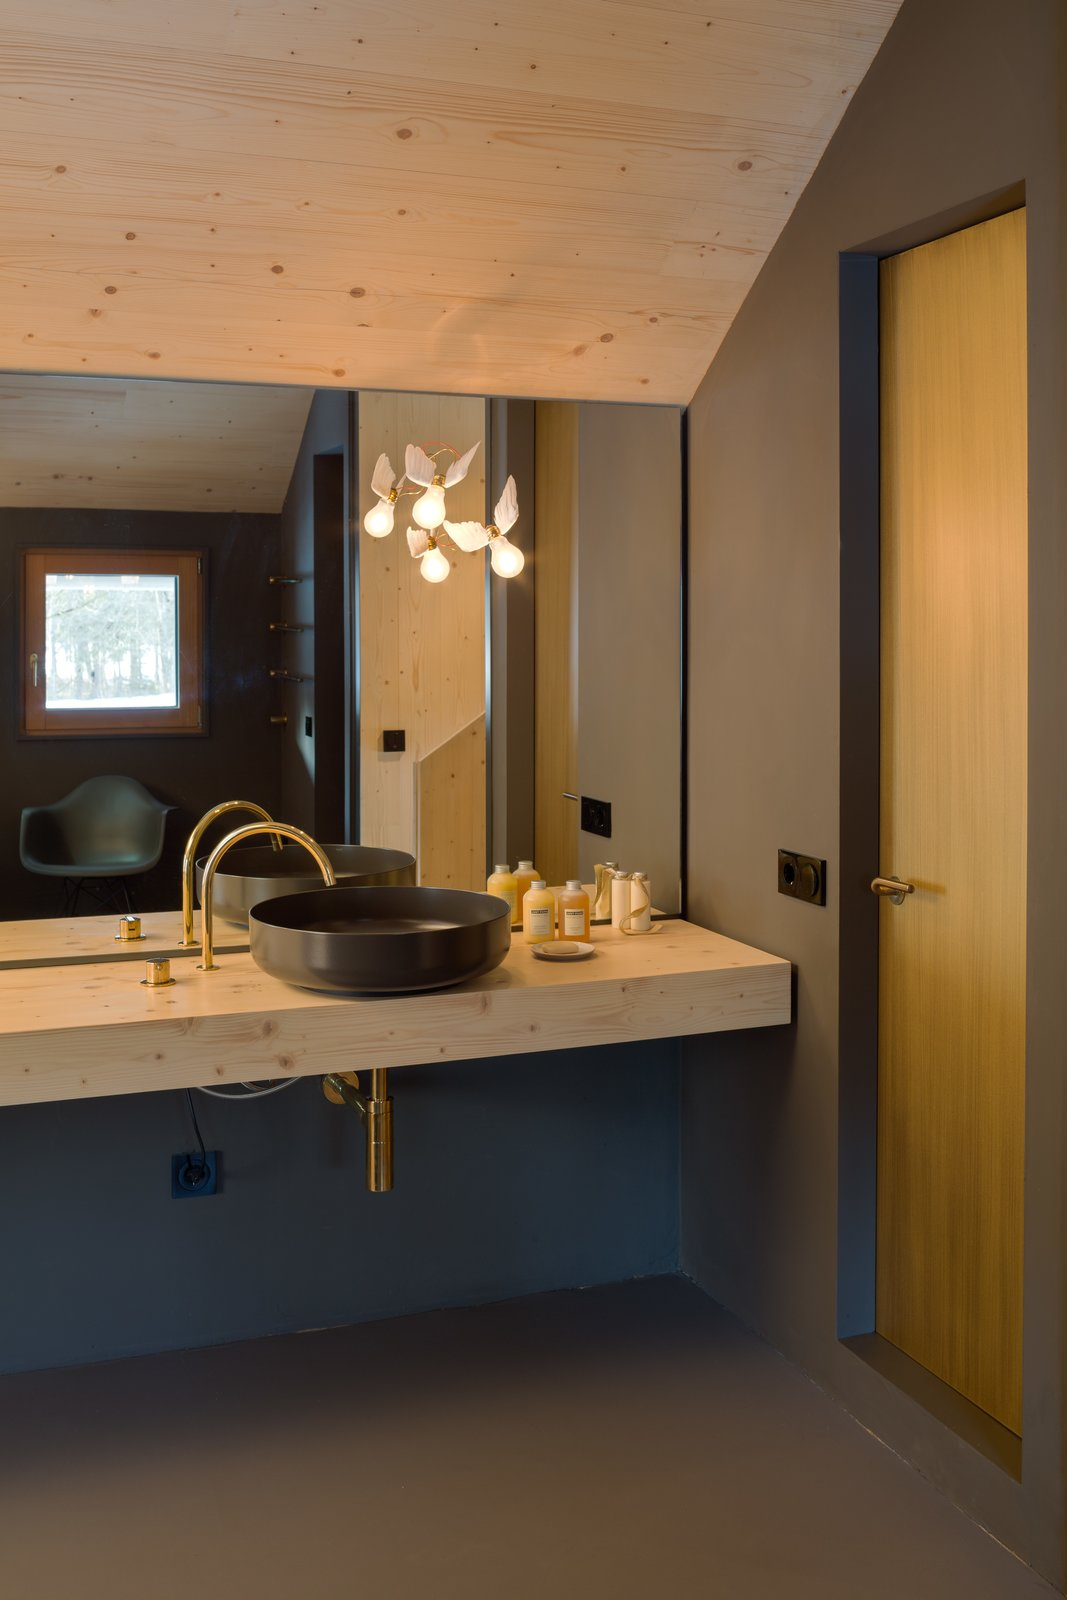 Bath Room, Wood Counter, Vessel Sink, and Wall Lighting  Photo 10 of 12 in A Peaceful Bavarian Retreat With Expansive Outdoor Terraces